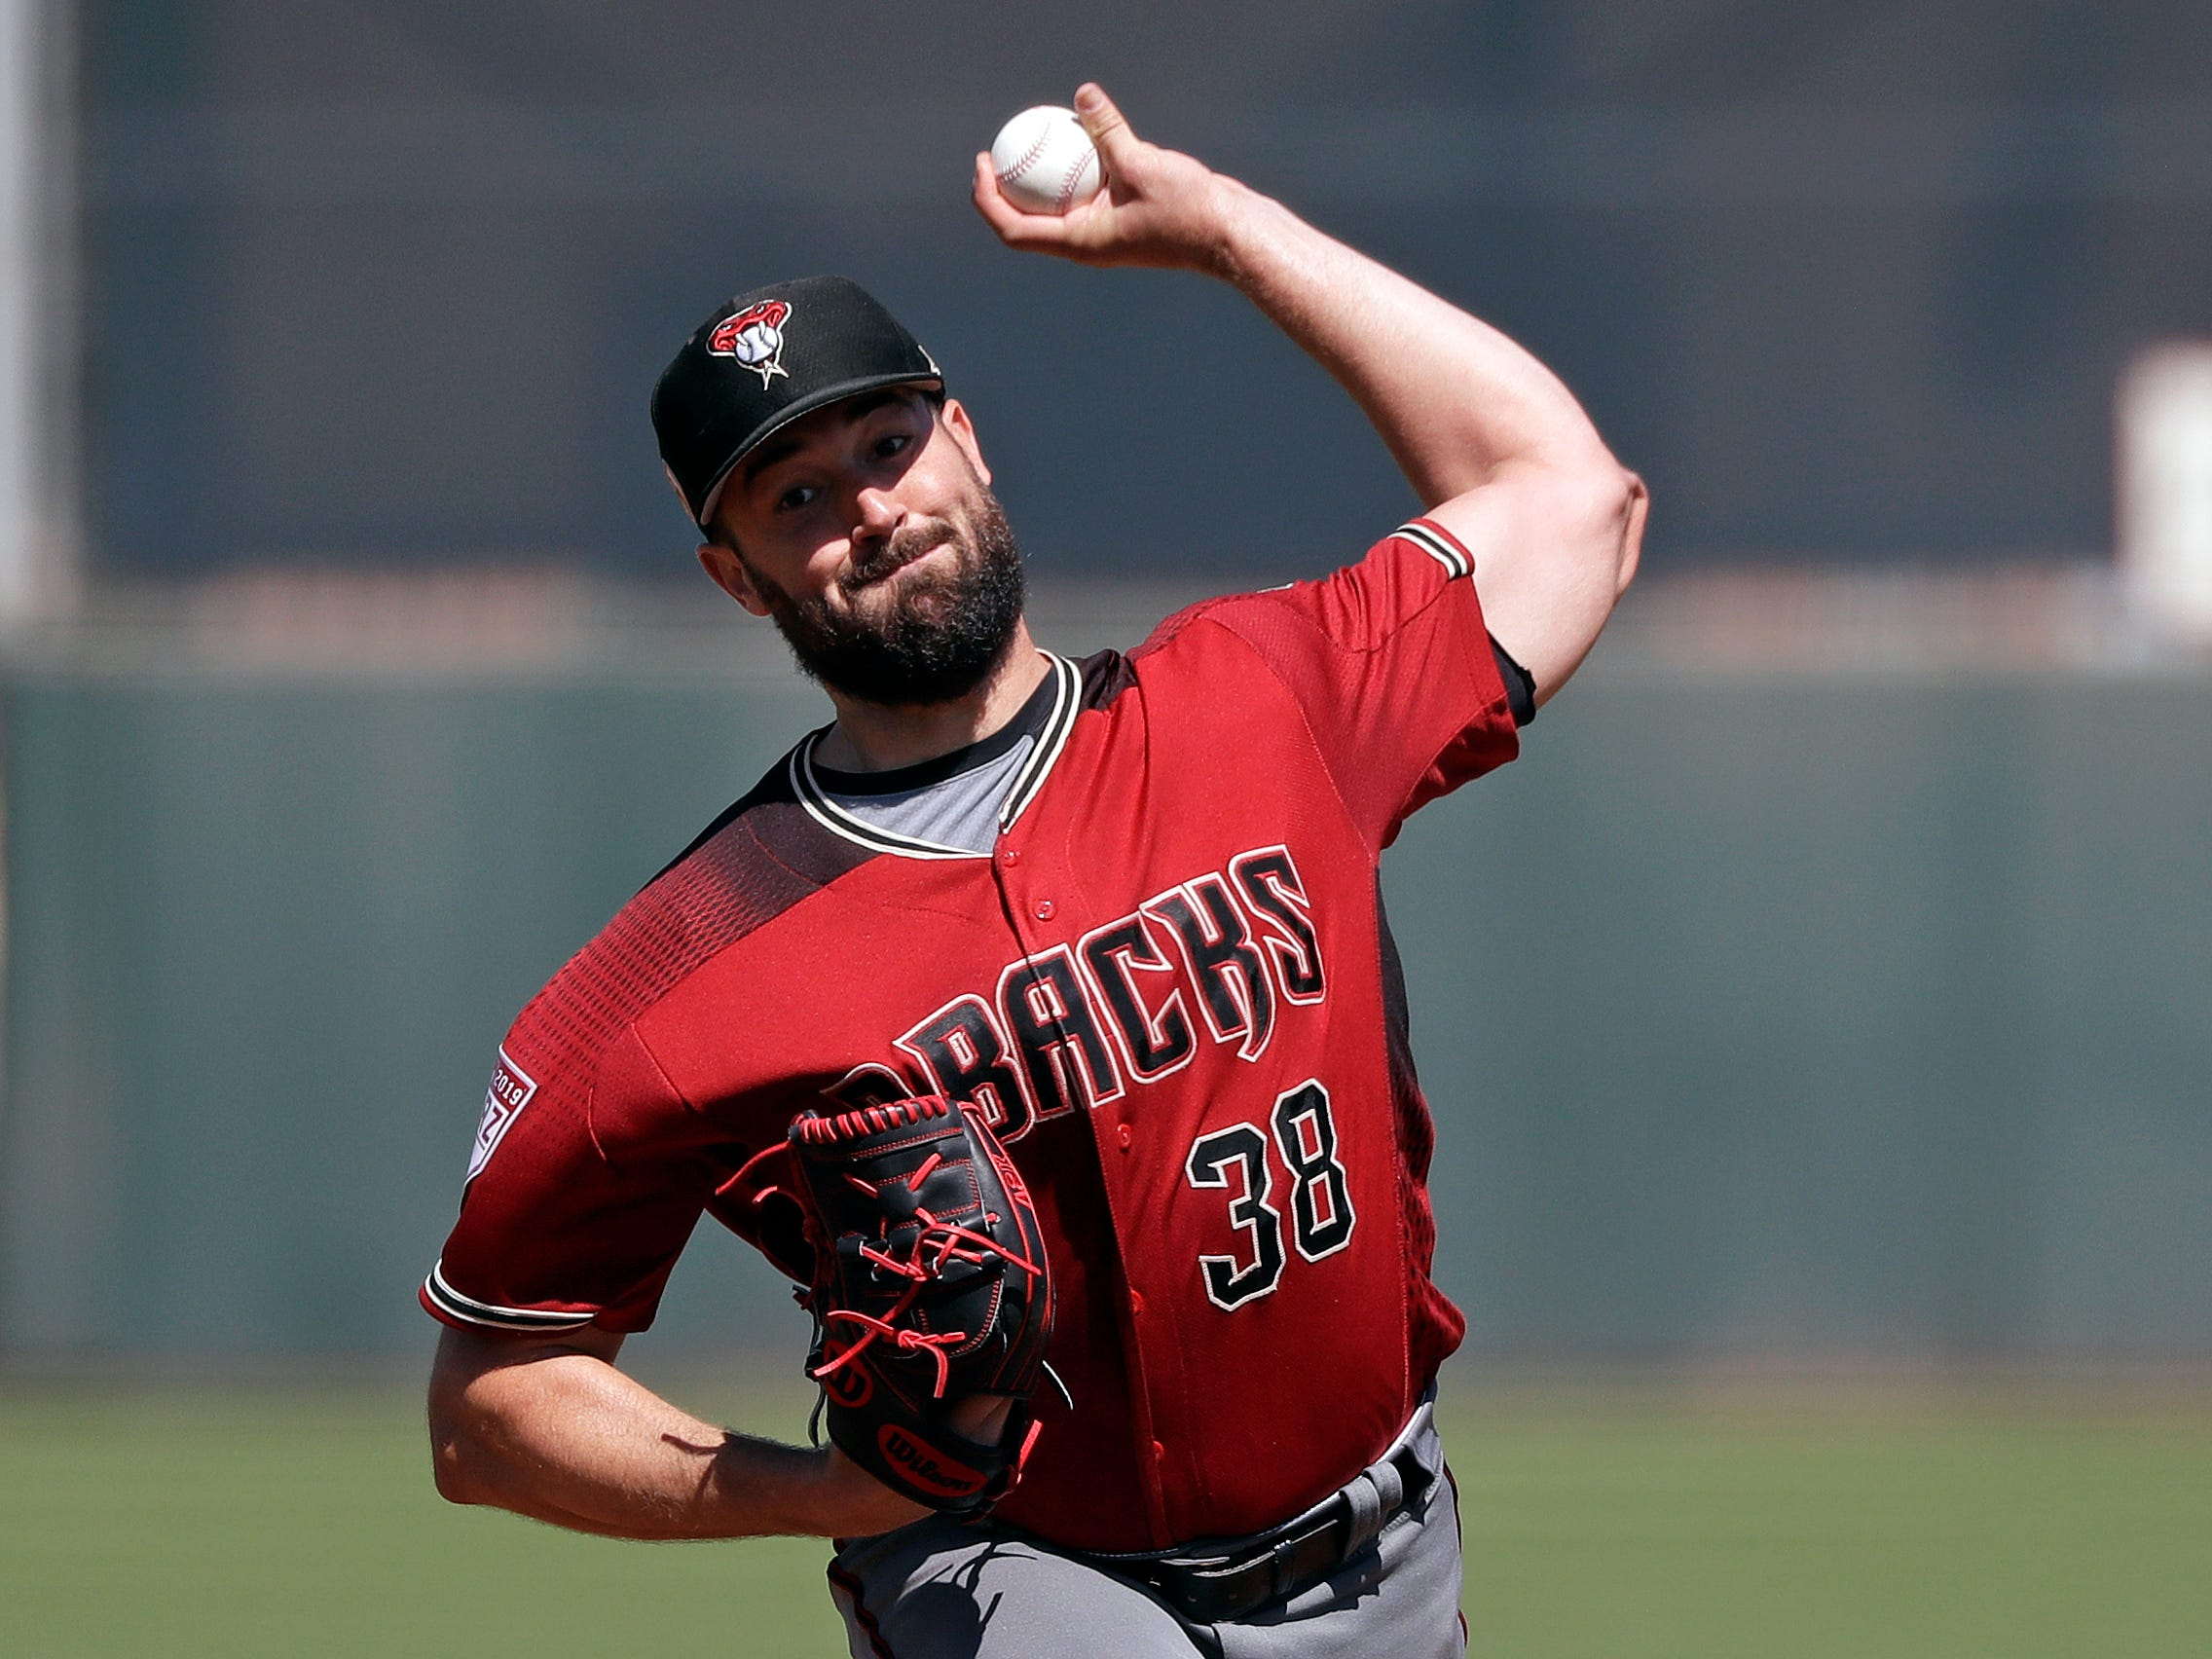 Arizona Diamondbacks starting pitcher Robbie Ray throws against the San Francisco Giants in the first inning of a spring training baseball game Saturday, March 23, 2019, in Scottsdale, Ariz.